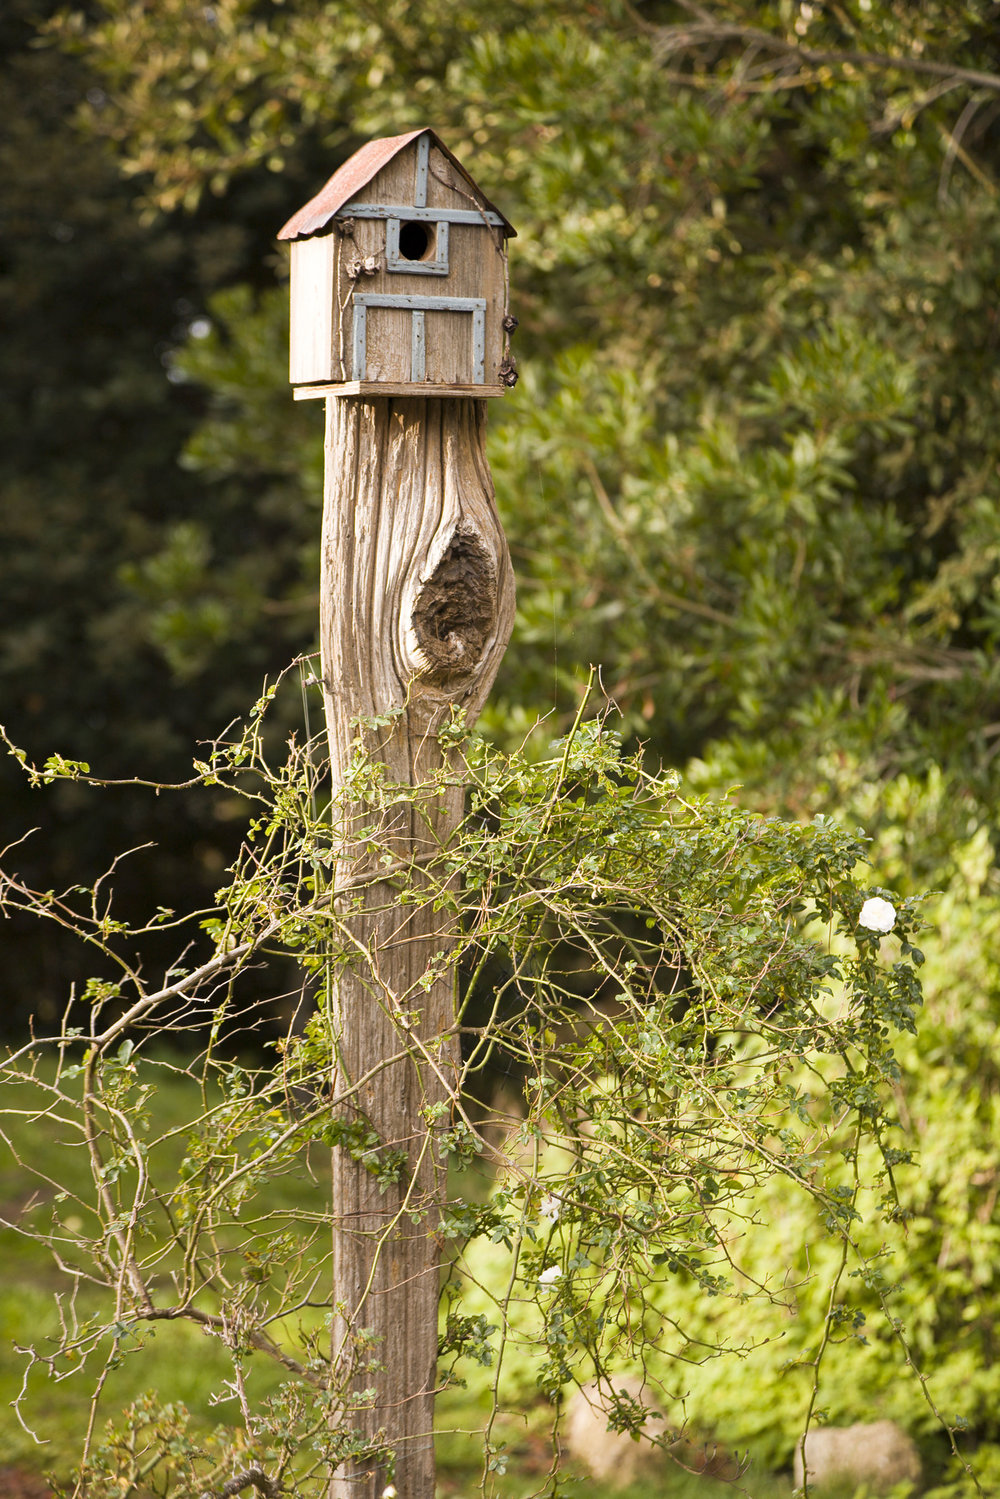 a wooden birdhouse on top of a rustic post